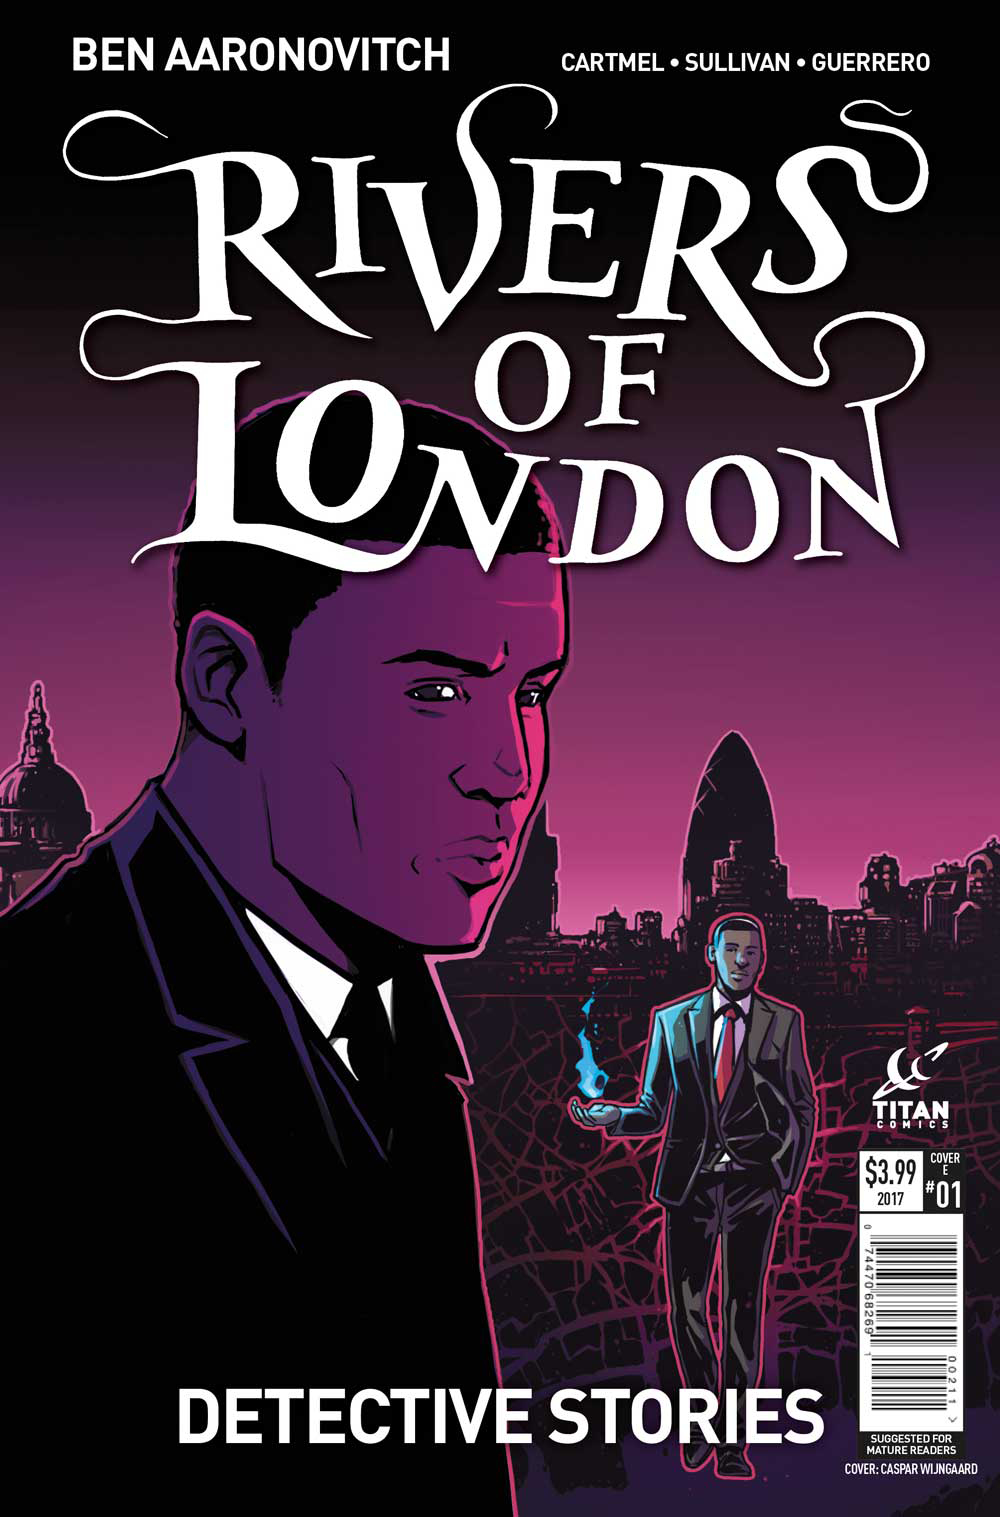 RIVERS OF LONDON DETECTIVE STORIES #1